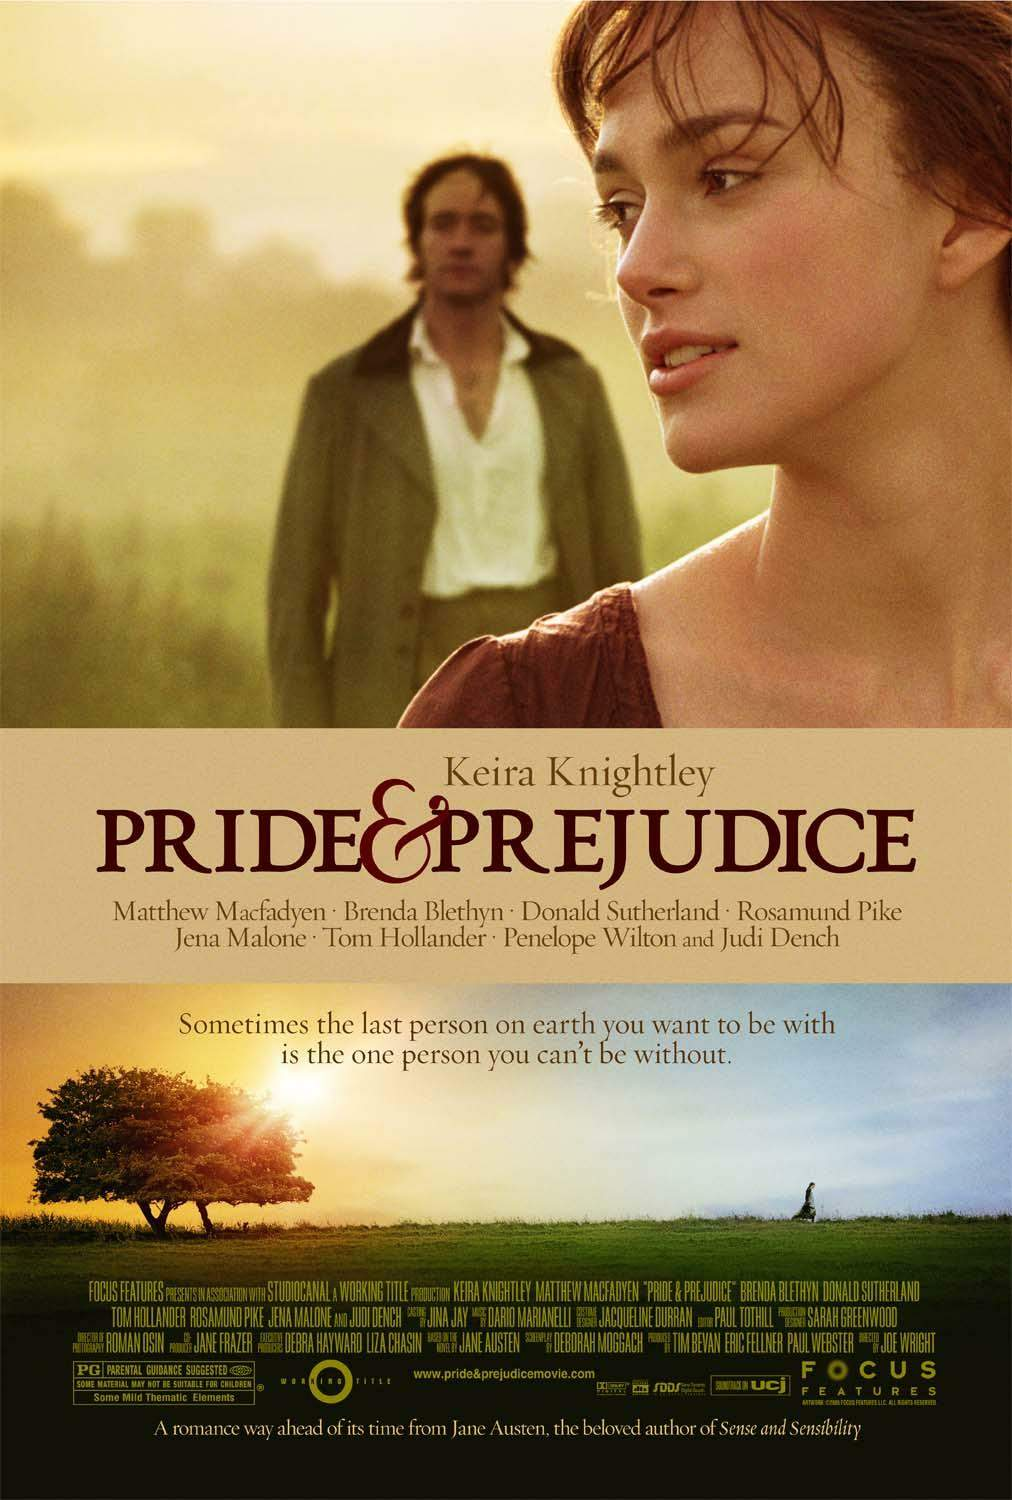 http://opionator.files.wordpress.com/2012/02/pride-and-prejudices-movieposter.jpg